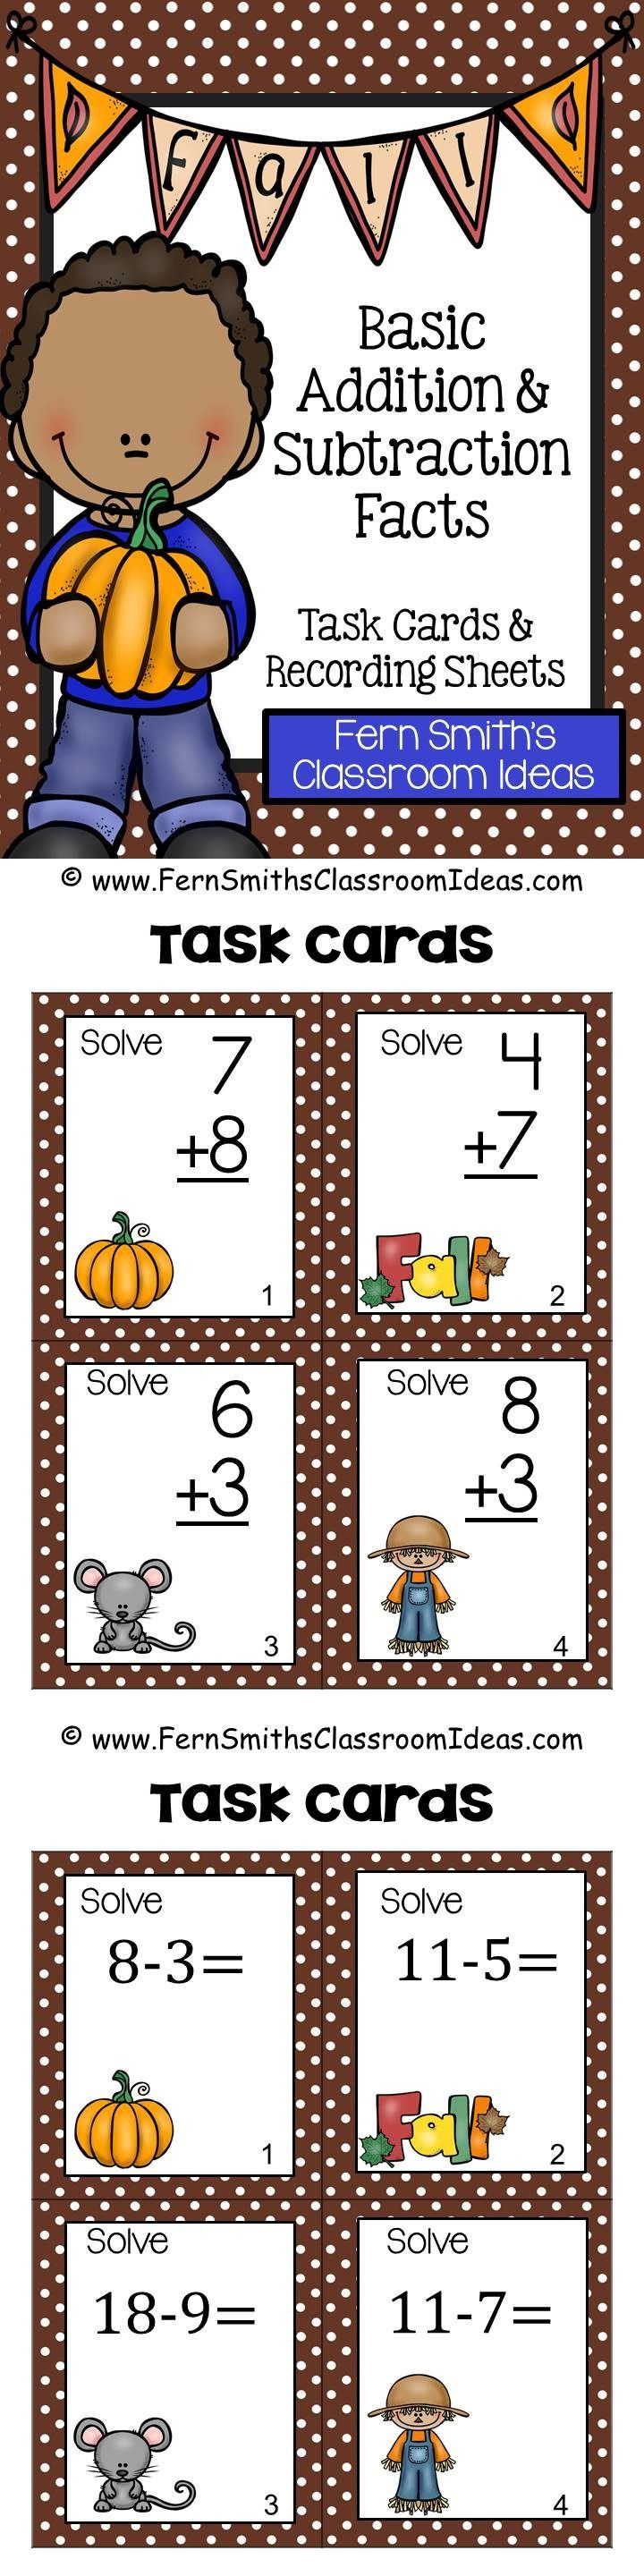 FOUR #FREE Subtraction Task Cards and FOUR #FREE Addition Task Cards to try before you buy in the preview download. Fall Basic Addition and Subtraction Facts Task Cards, Recording Sheets and Answer Keys perfect for Autumn. →72 Task Cards in color. →72 Task Cards in black and white. →6 Recording Printable Worksheets with 6 Answer Key Sheets #TPT $Paid